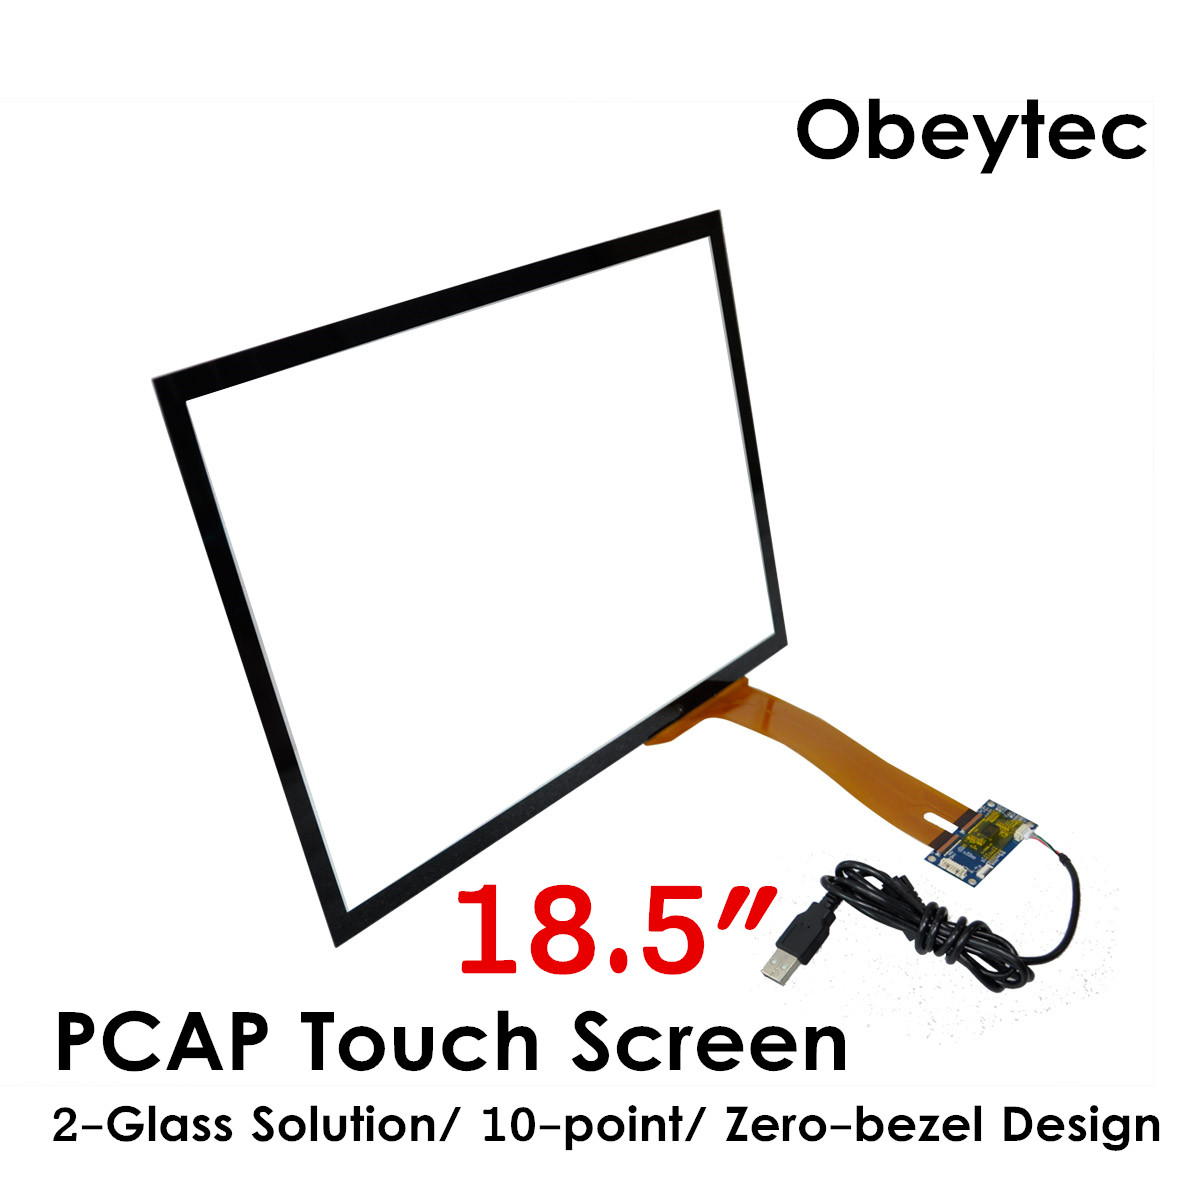 Obeytec 18.5 Wide Screen PCAP Touch Panel, USB Controller, 4PCS/SET, Support windows, Android, Linux, 10 TouchesObeytec 18.5 Wide Screen PCAP Touch Panel, USB Controller, 4PCS/SET, Support windows, Android, Linux, 10 Touches